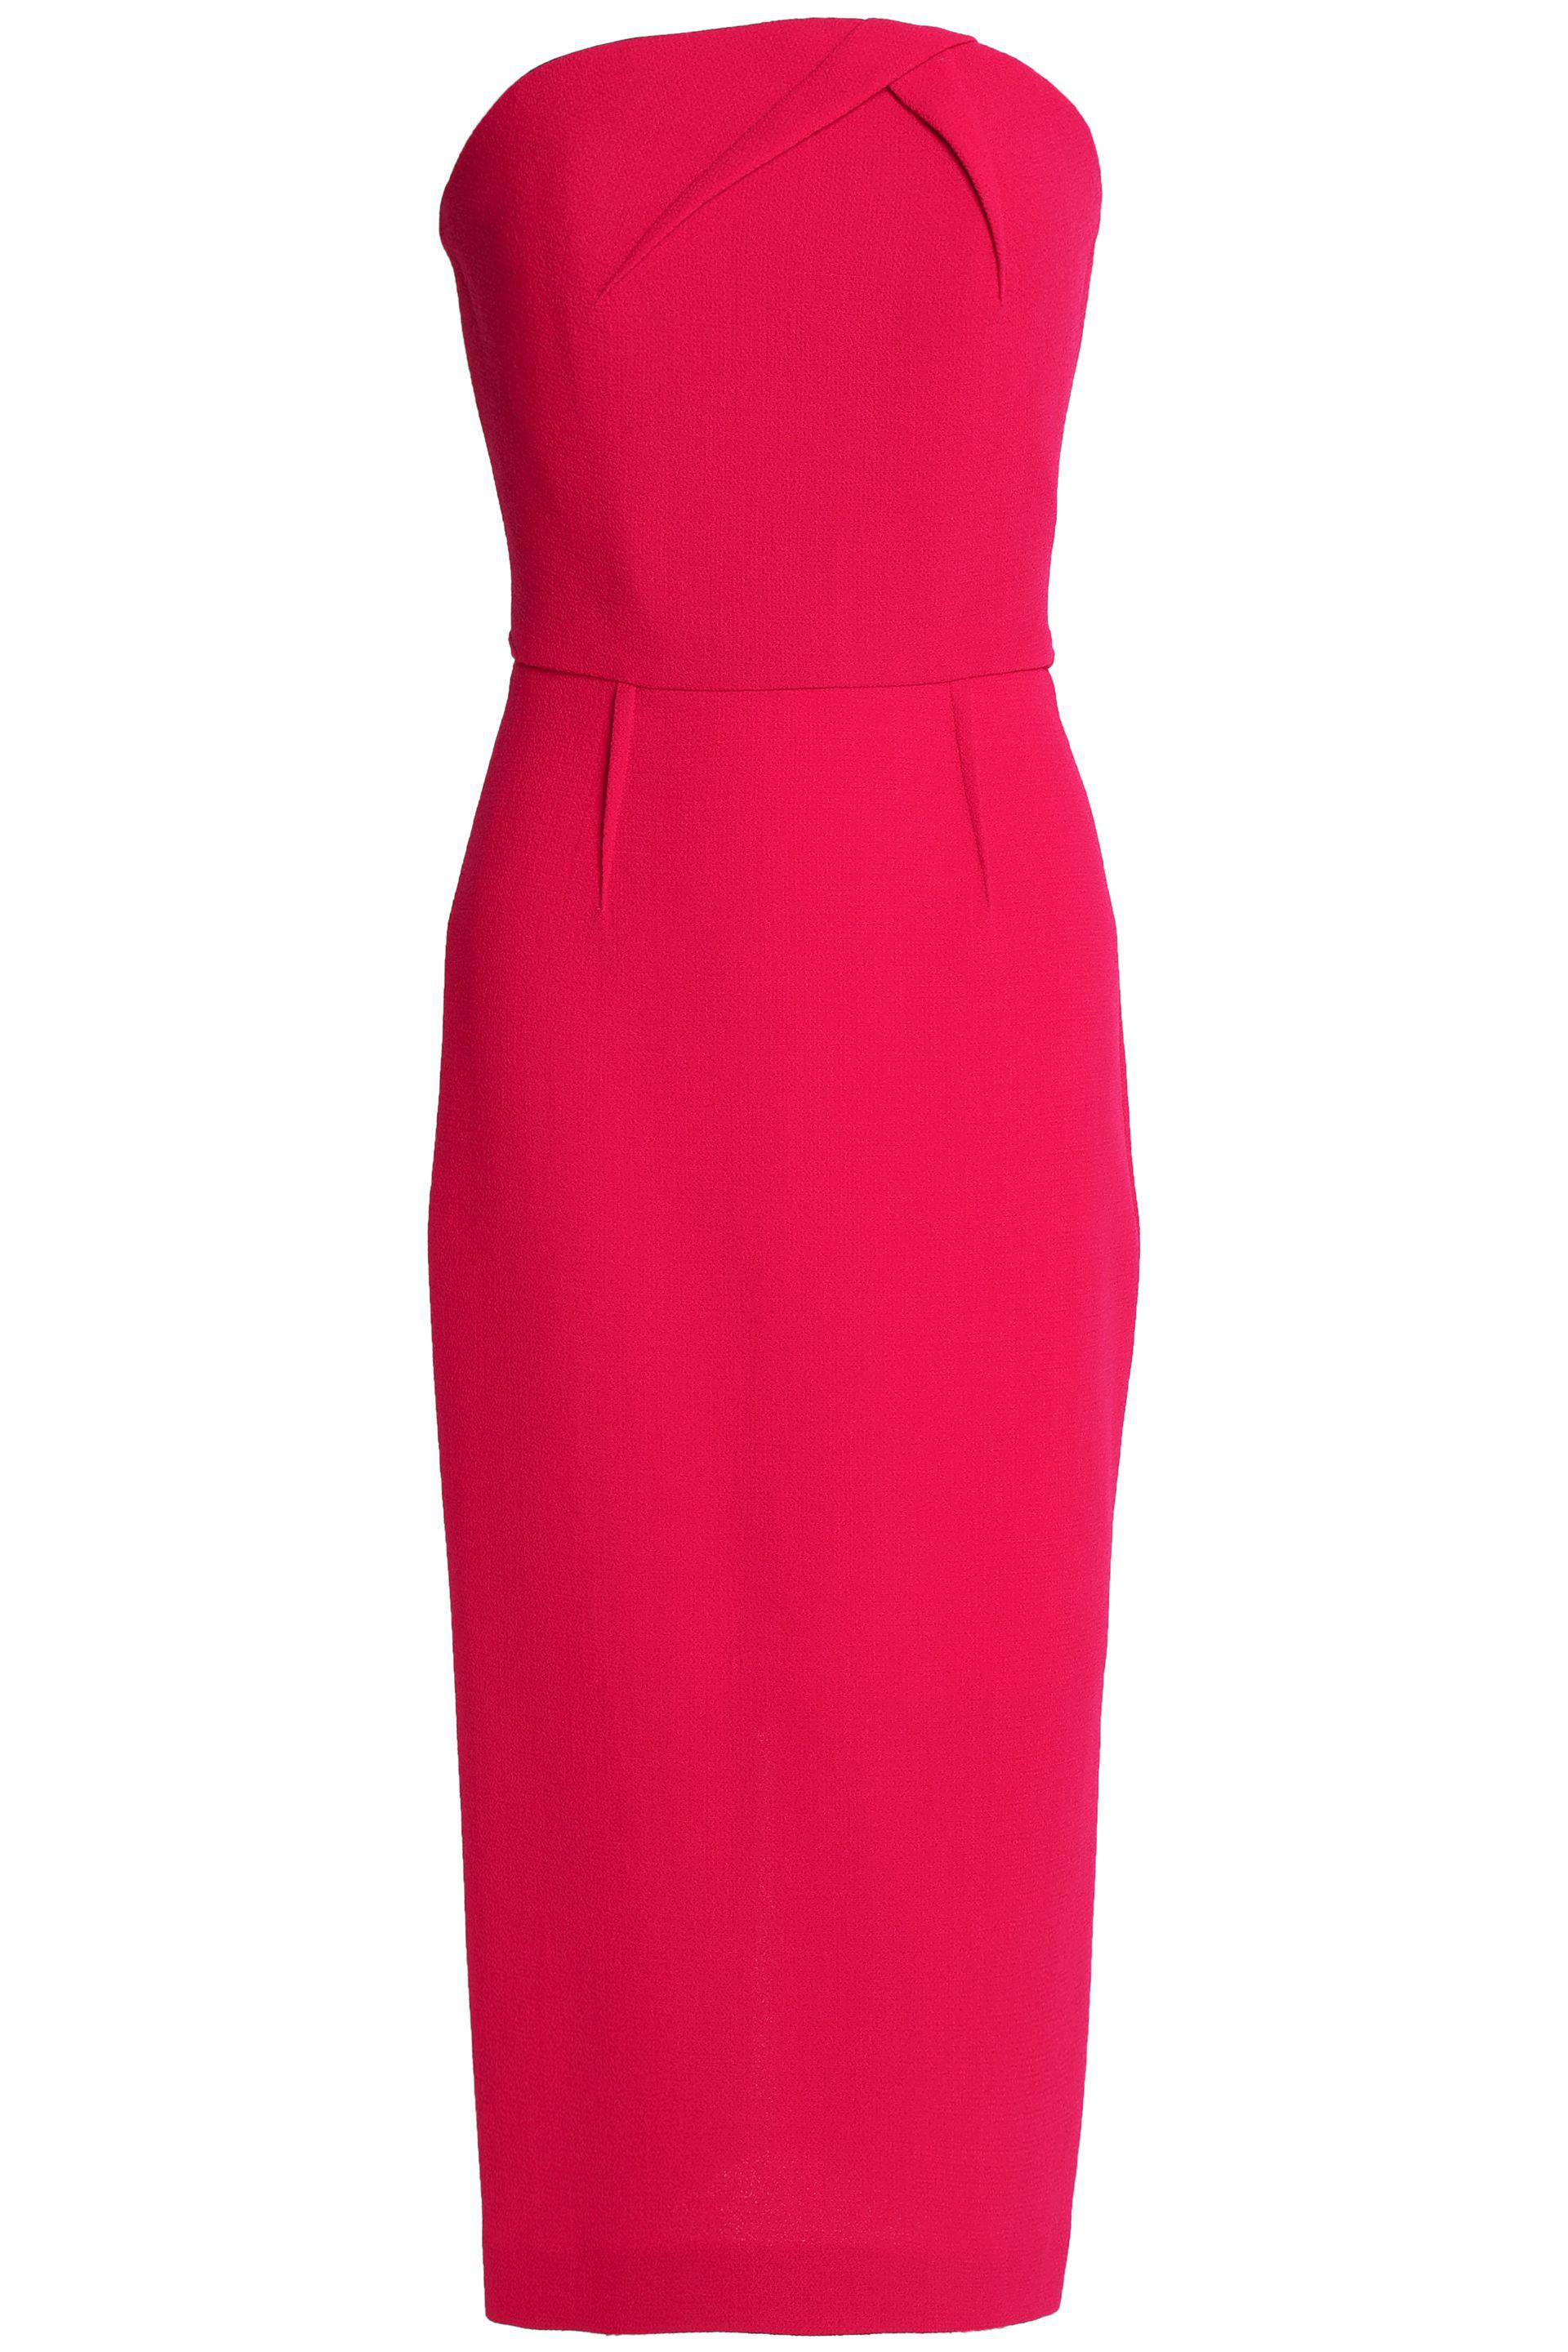 Roland Mouret Strapless wool-crepe dress ($988) liked on